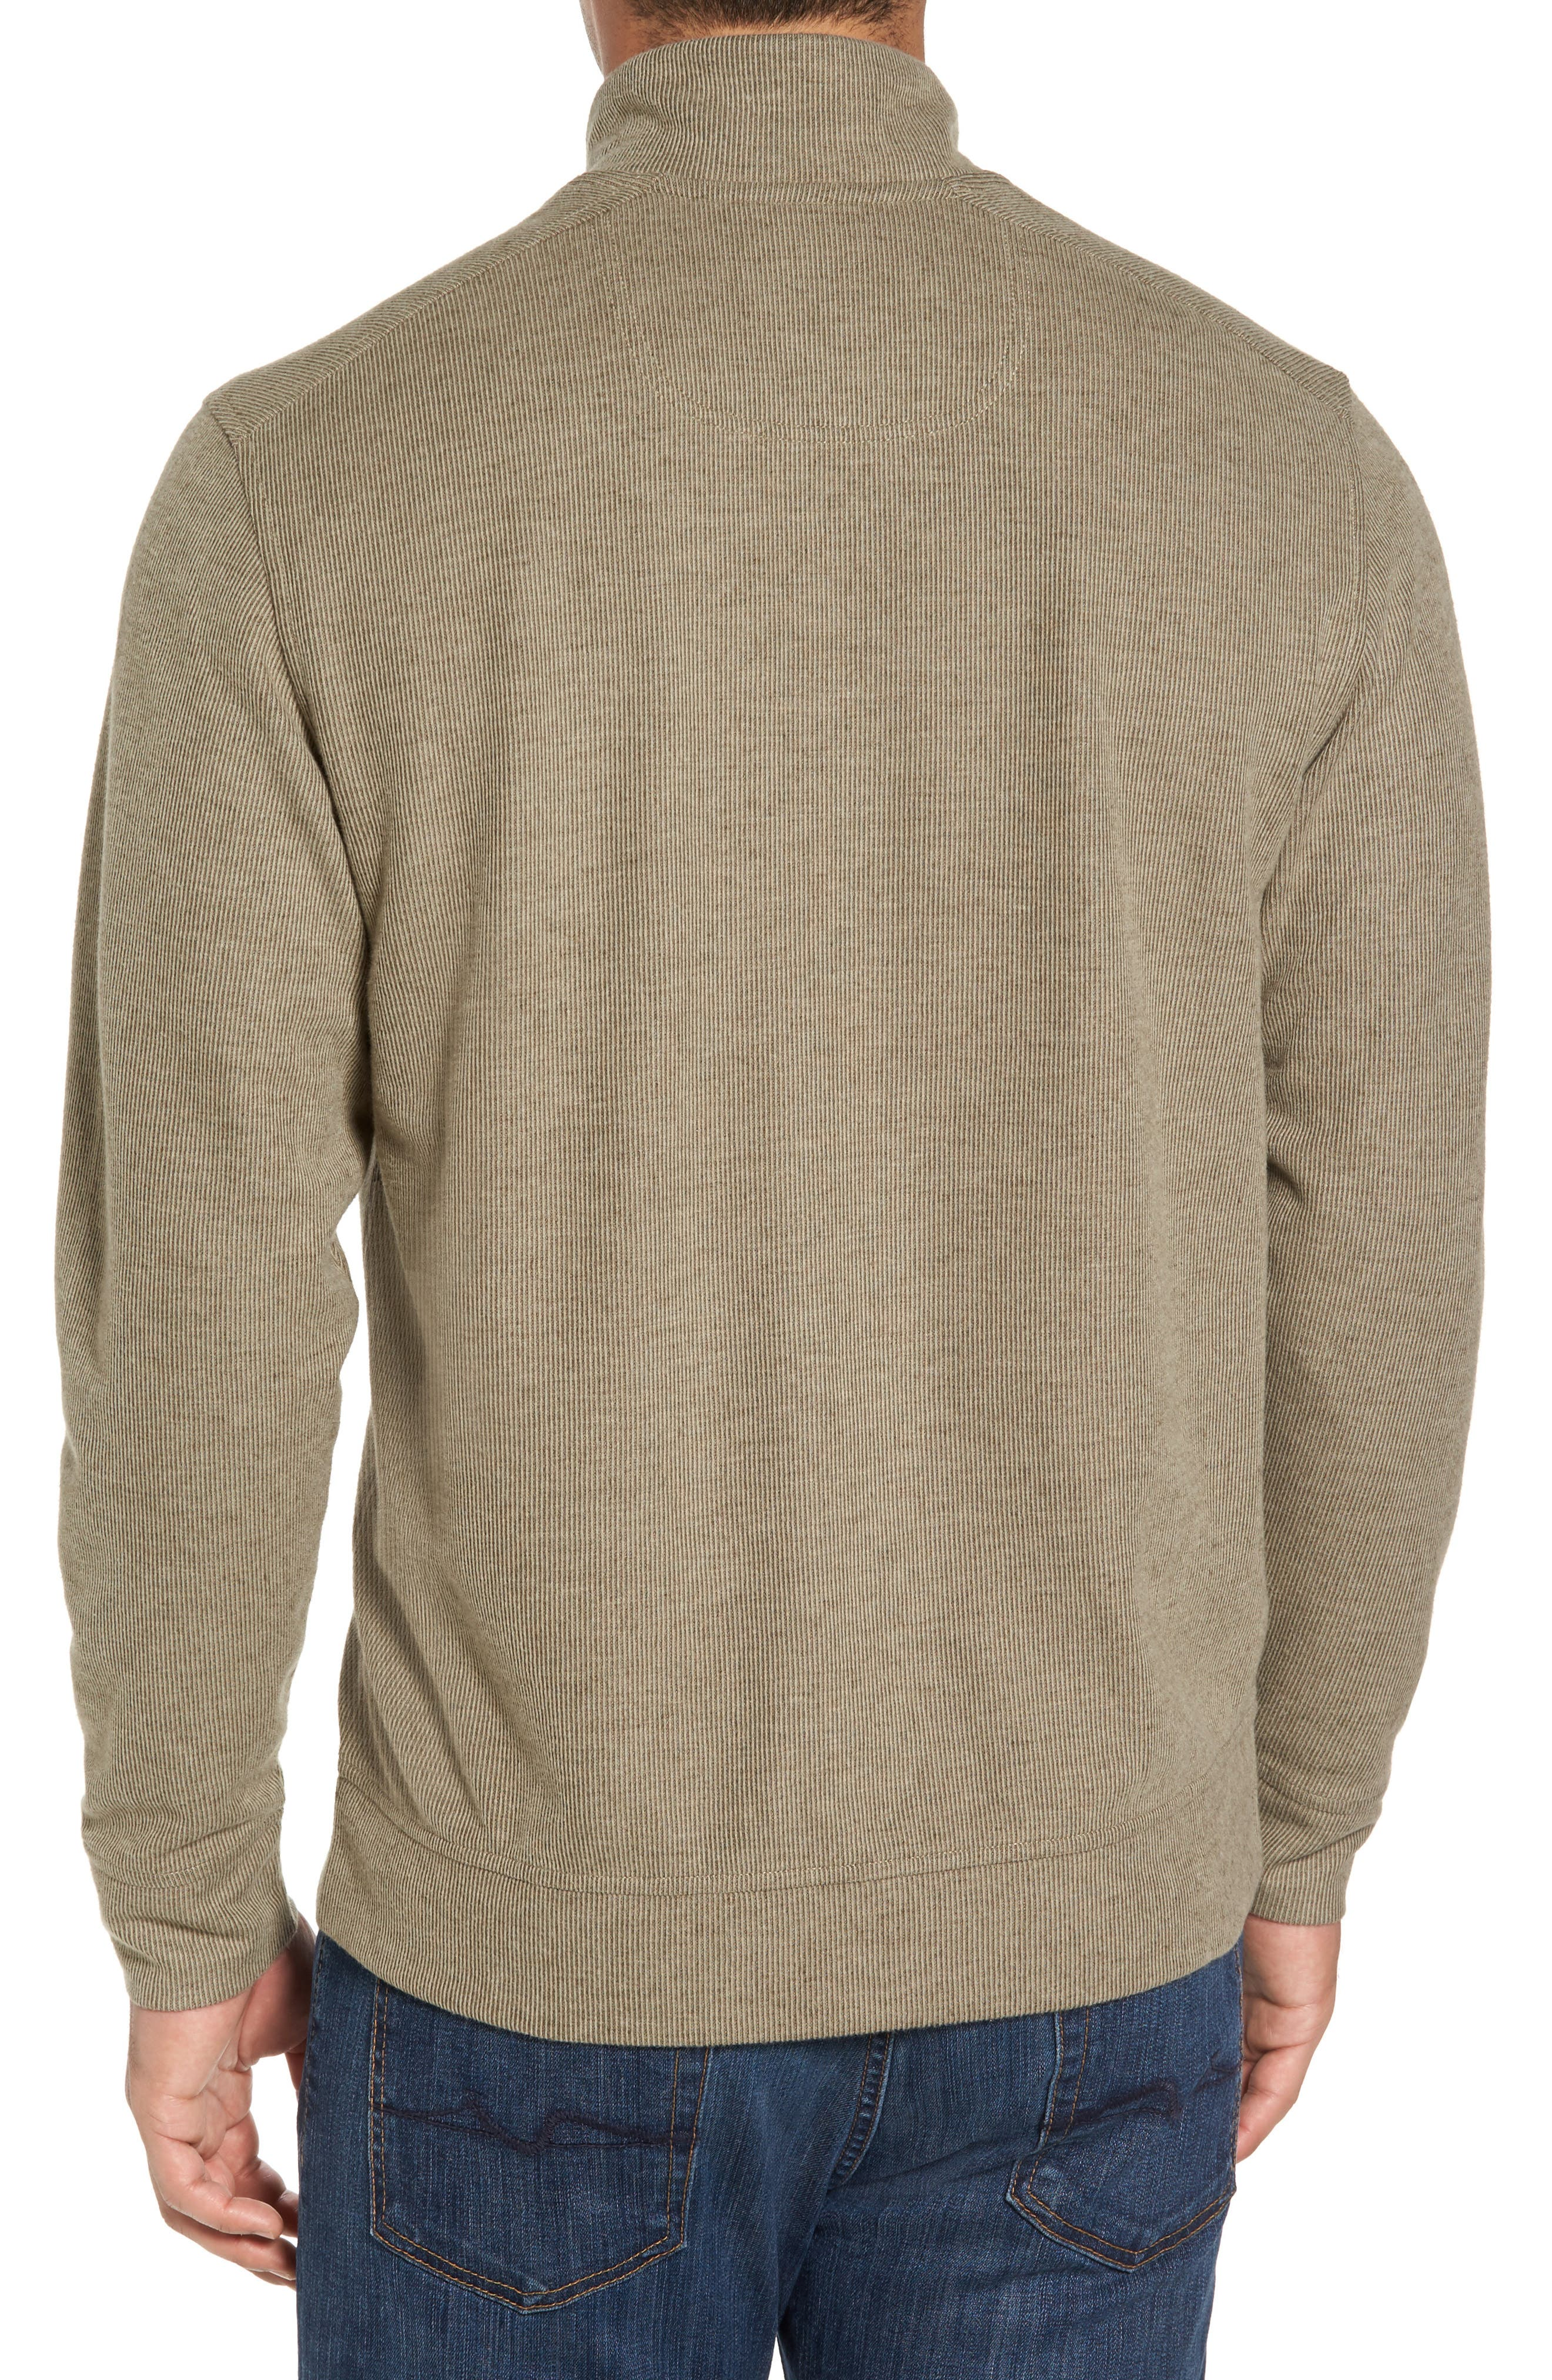 Cold Springs Snap Mock Neck Sweater,                             Alternate thumbnail 2, color,                             Mocha